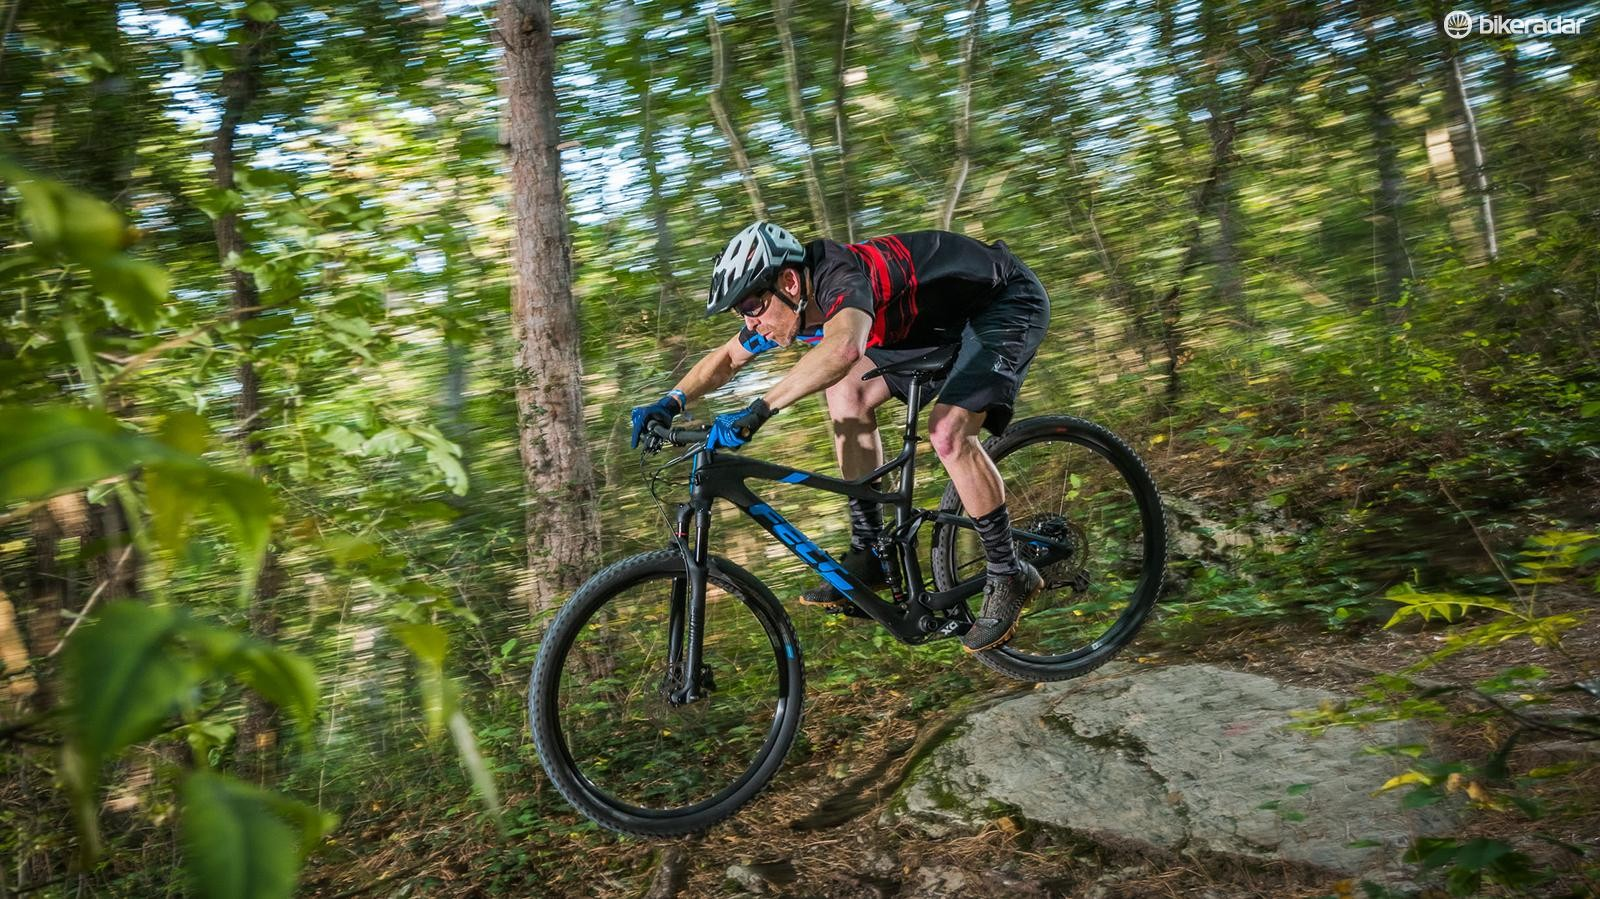 Felt's new Edict frame is a competitive XC weight but it's the dramatic tracking stiffness and efficient yet capable suspension that stands out on the start line or singletrack